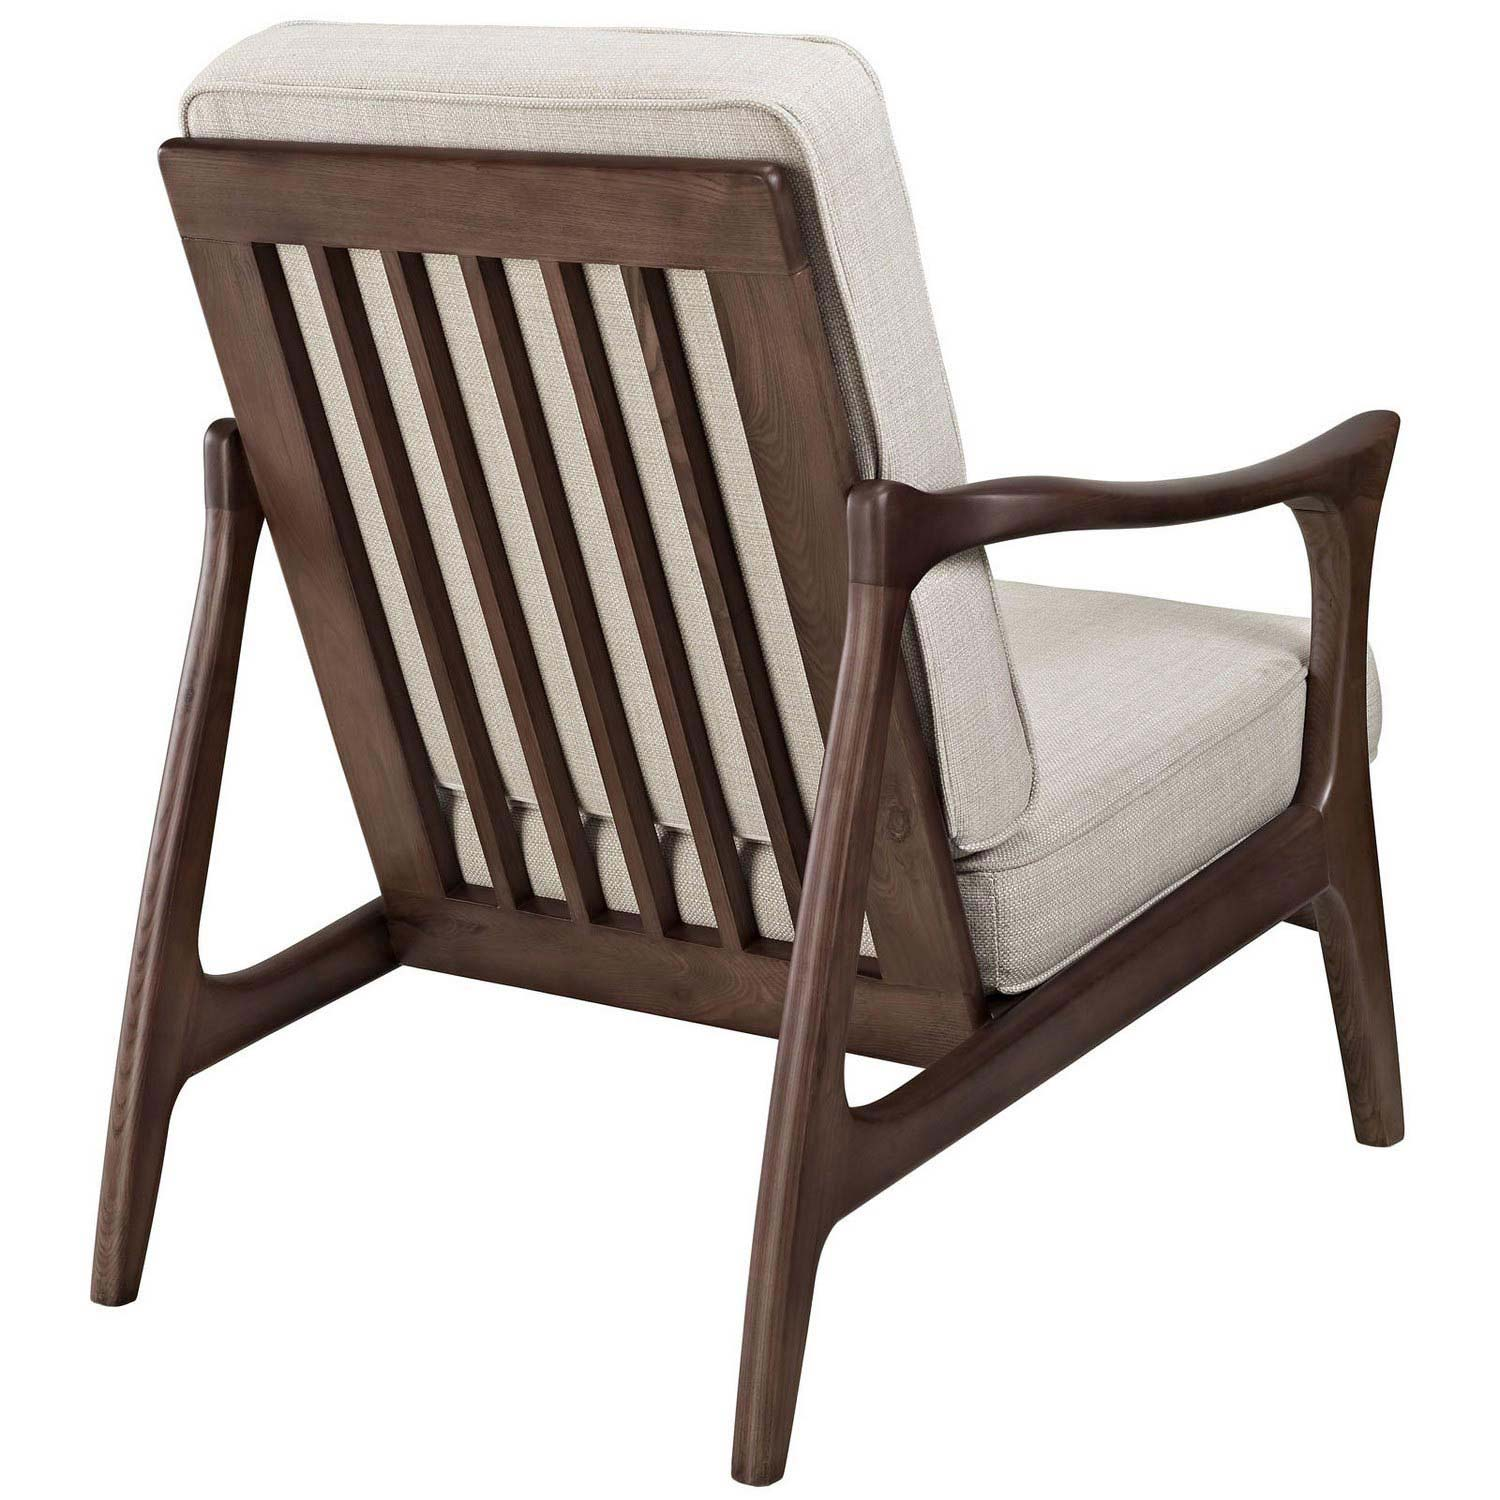 Modway Canoe Lounge Chair - Brown